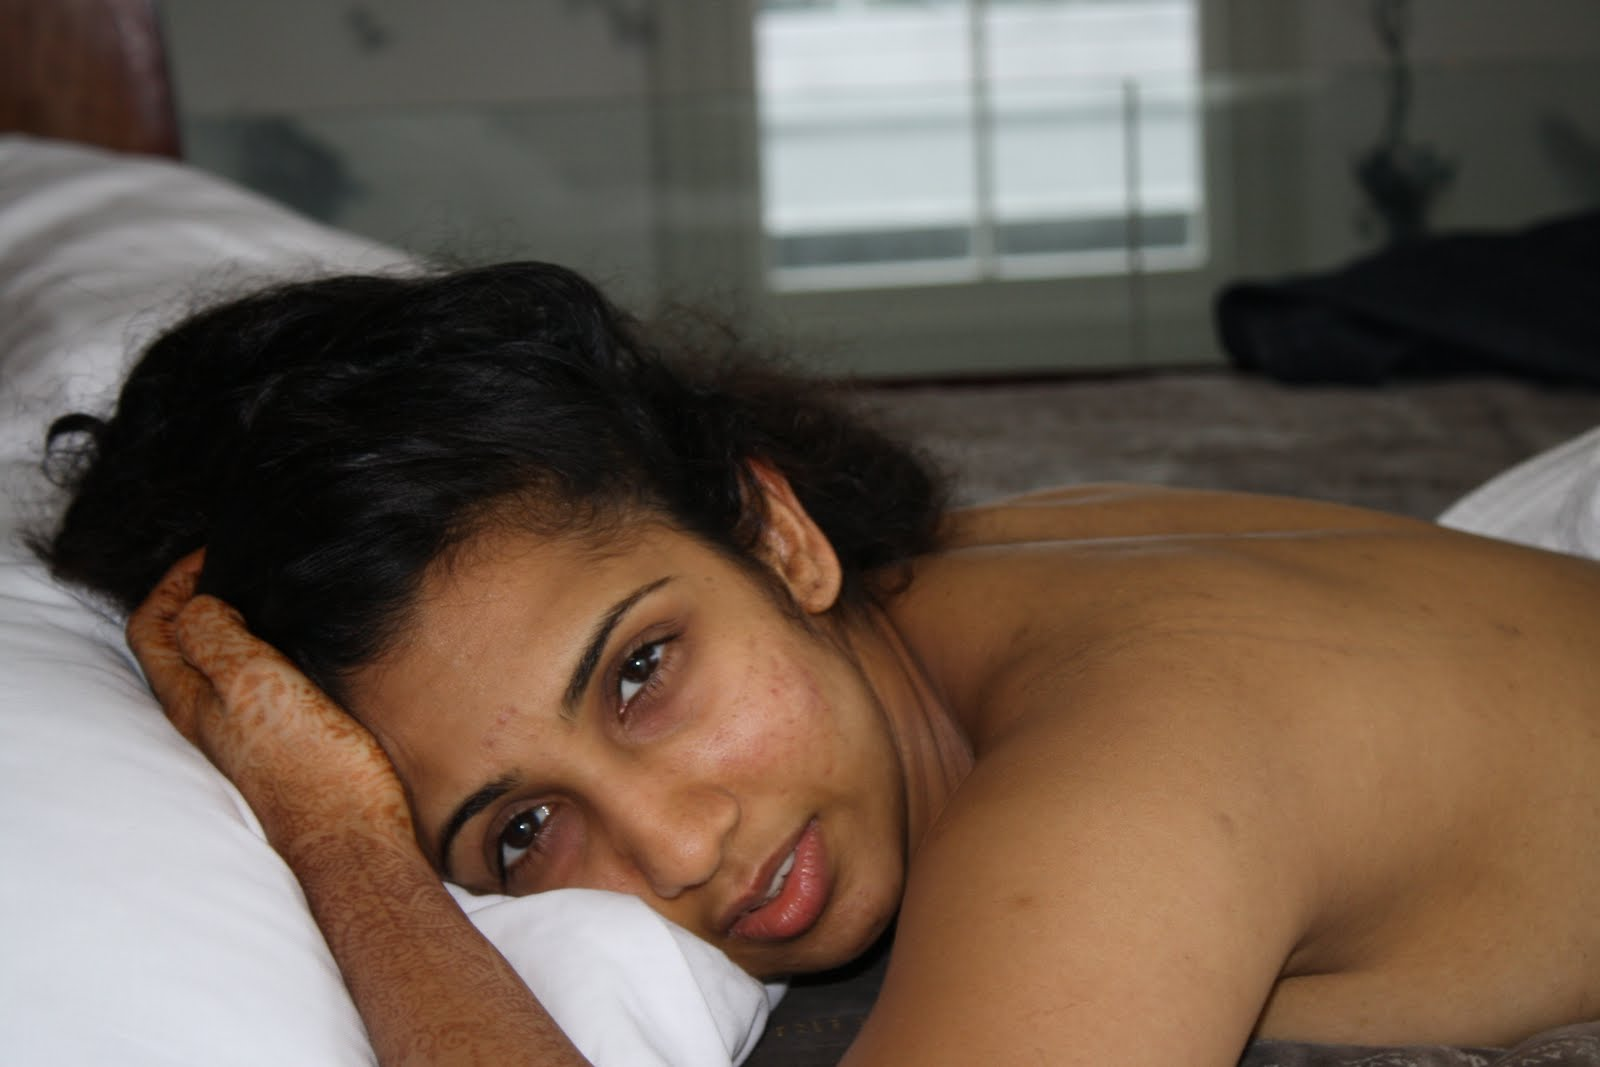 Indian sex video of amateur pornstar lily 4